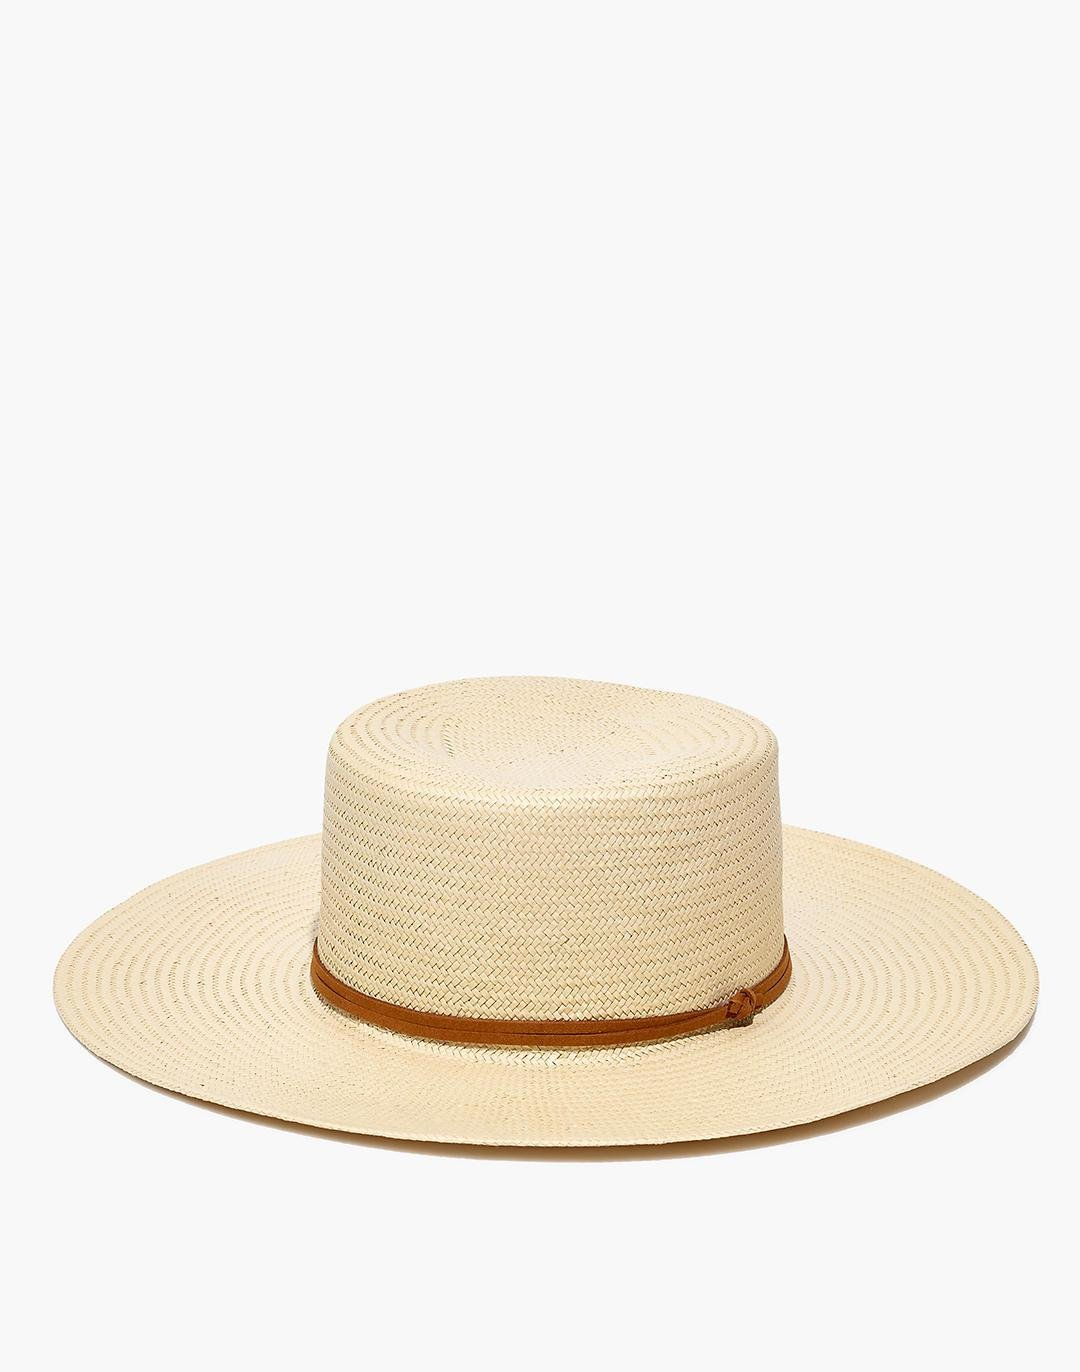 Madewell x Biltmore® Straw Wide-Brimmed Boater Hat